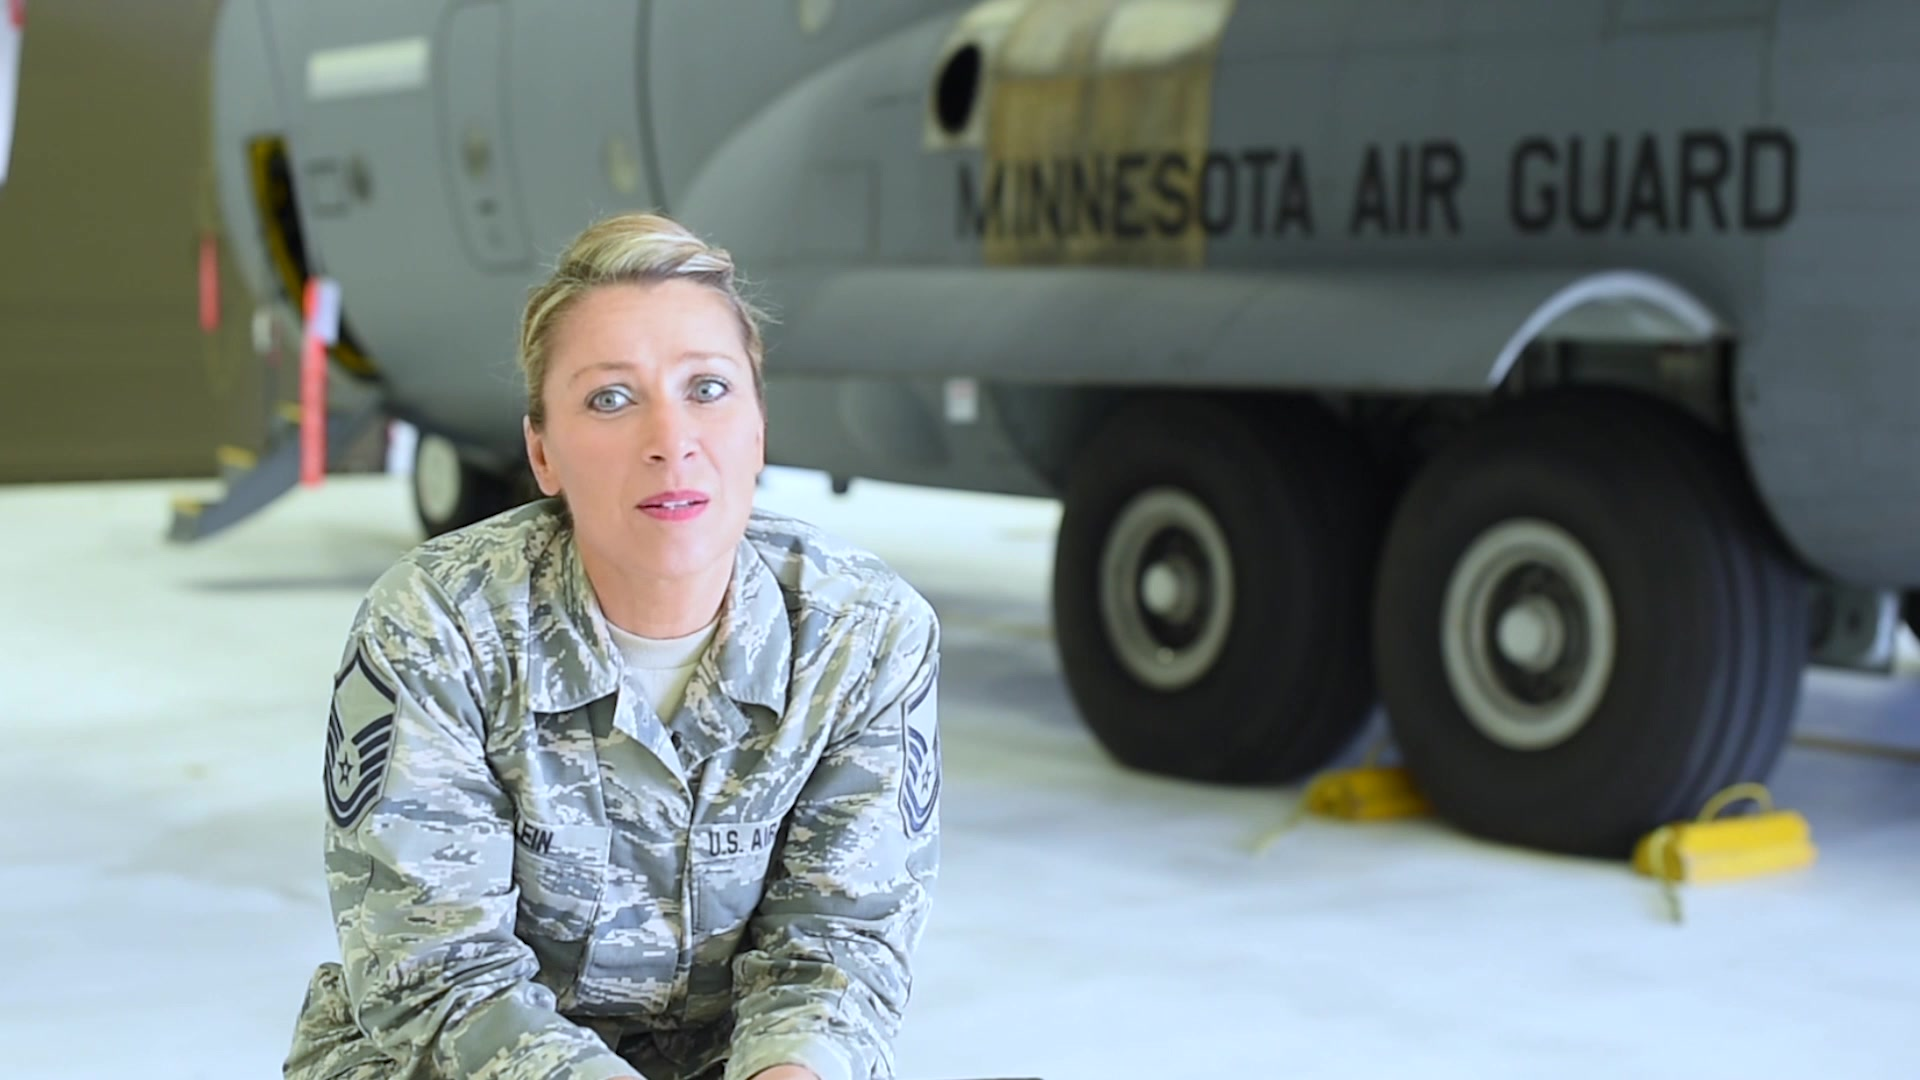 MSgt Heather Klein shares her story of how the DPH from the 133AW helped her through a difficult time.